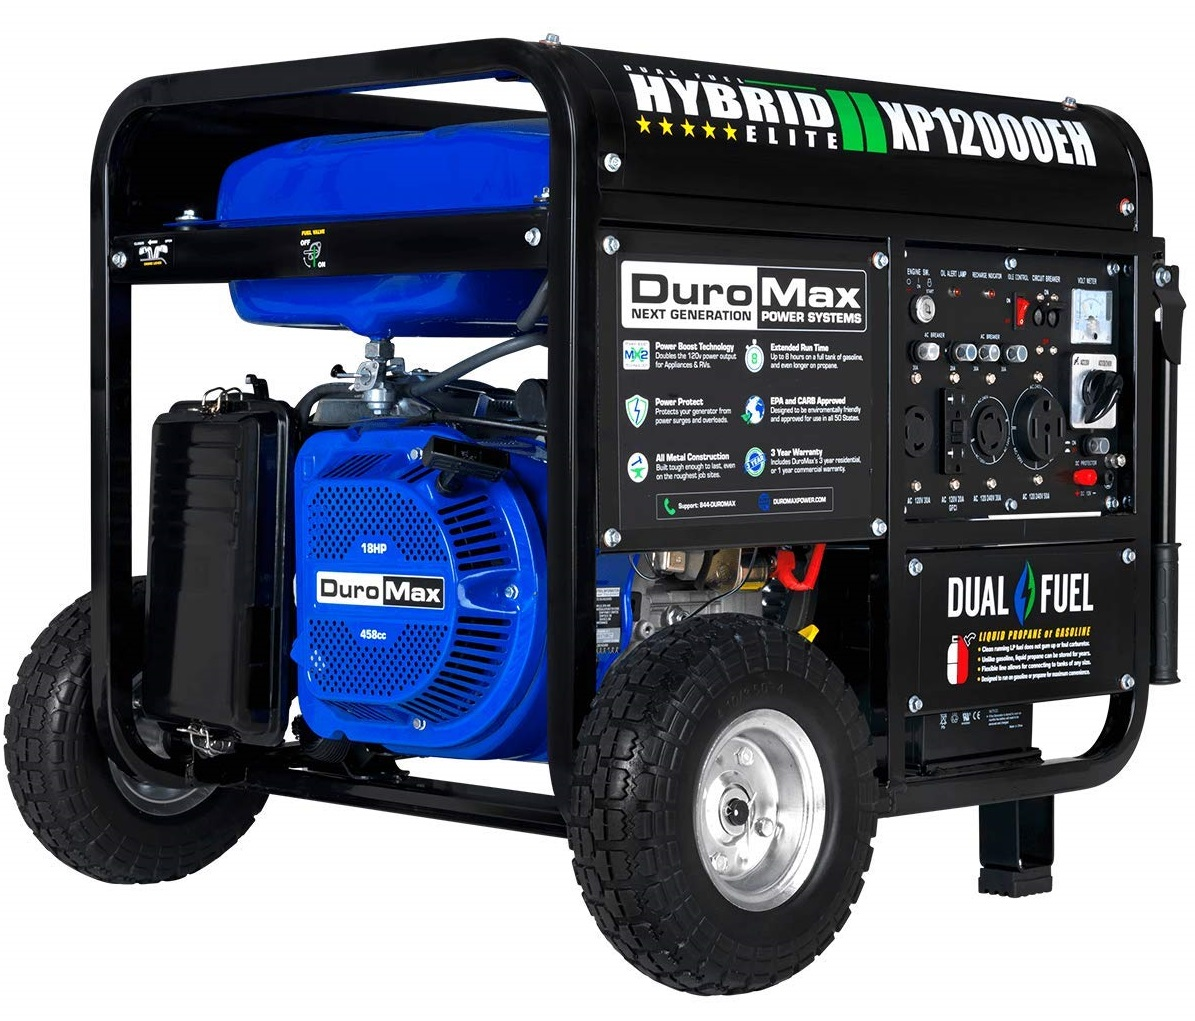 DuroMax Dual Fuel Electric Start Portable Generator